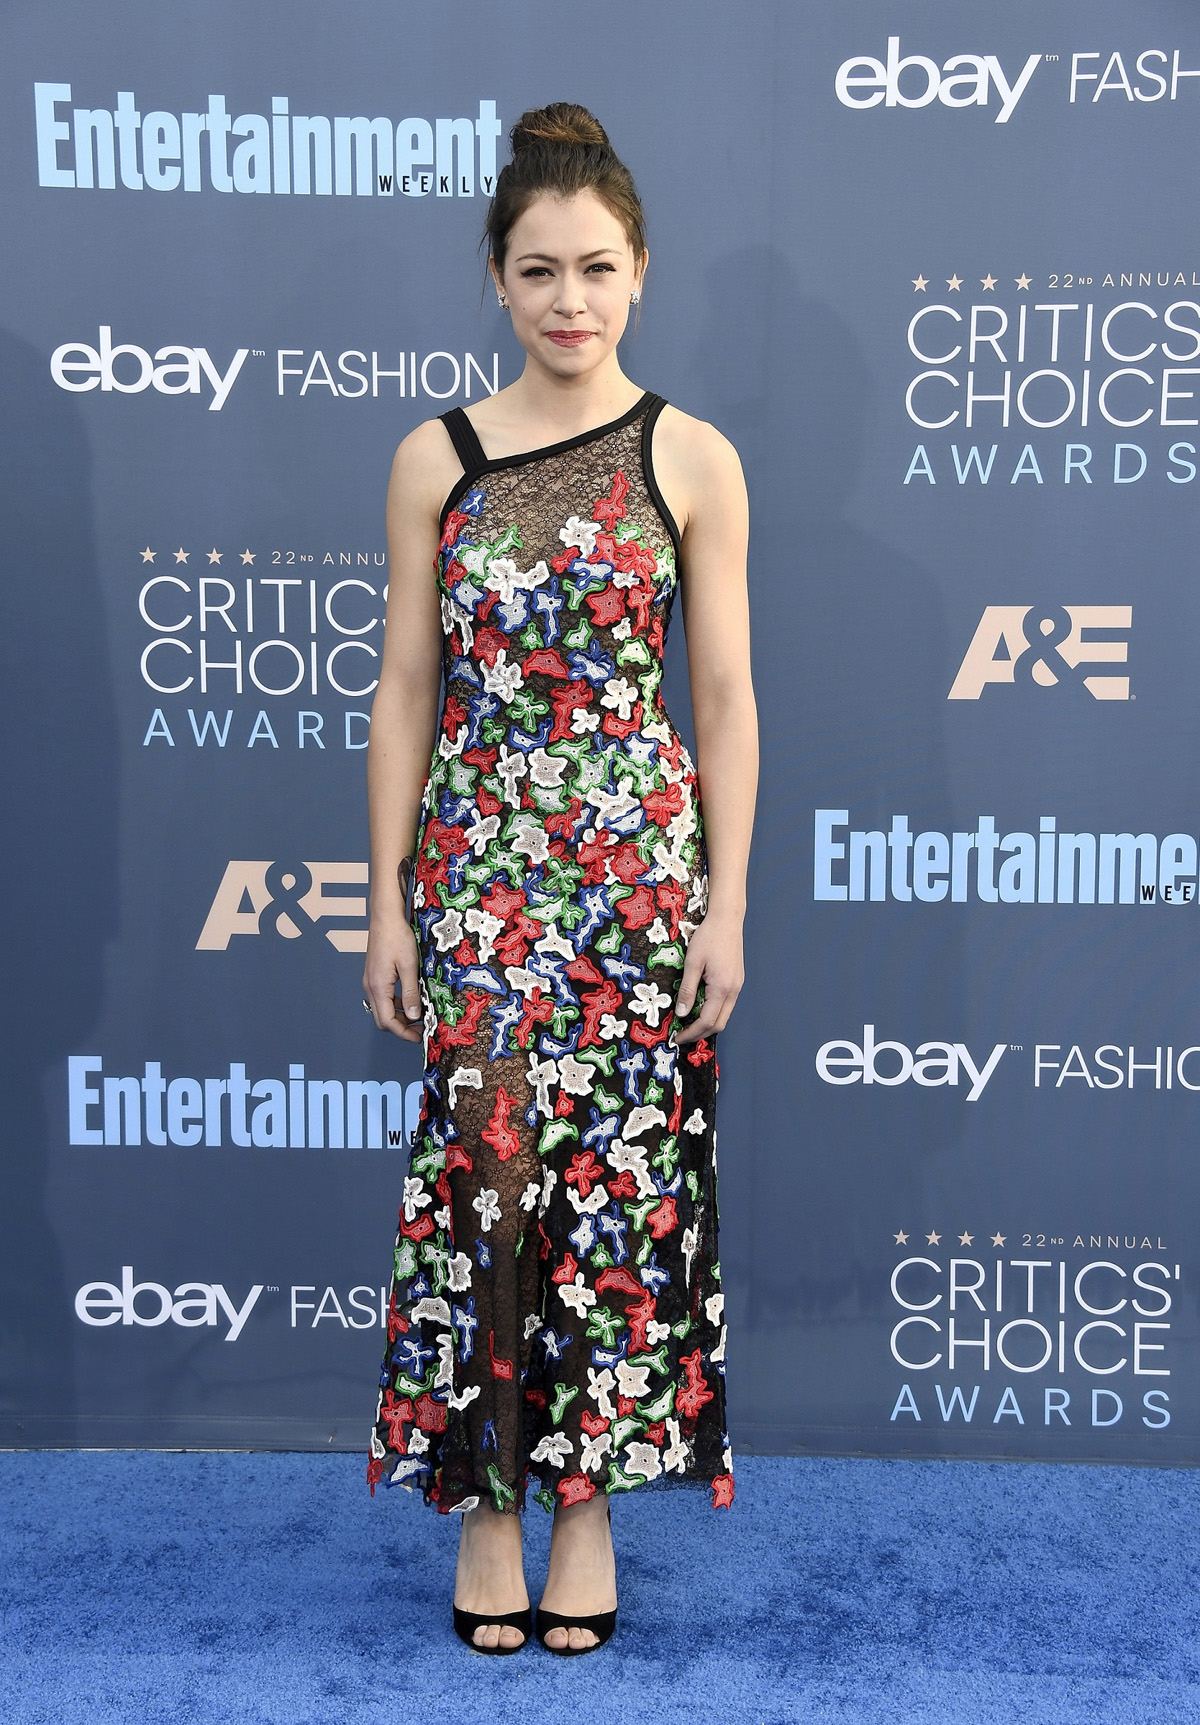 The 22nd Annual Critics' Choice Awards - Arrivals SANTA MONICA, CA - DECEMBER 11: Actress Tatiana Maslany attends The 22nd Annual Critics' Choice Awards at Barker Hangar on December 11, 2016 in Santa Monica, California. (Photo by Frazer Harrison/Getty Images)